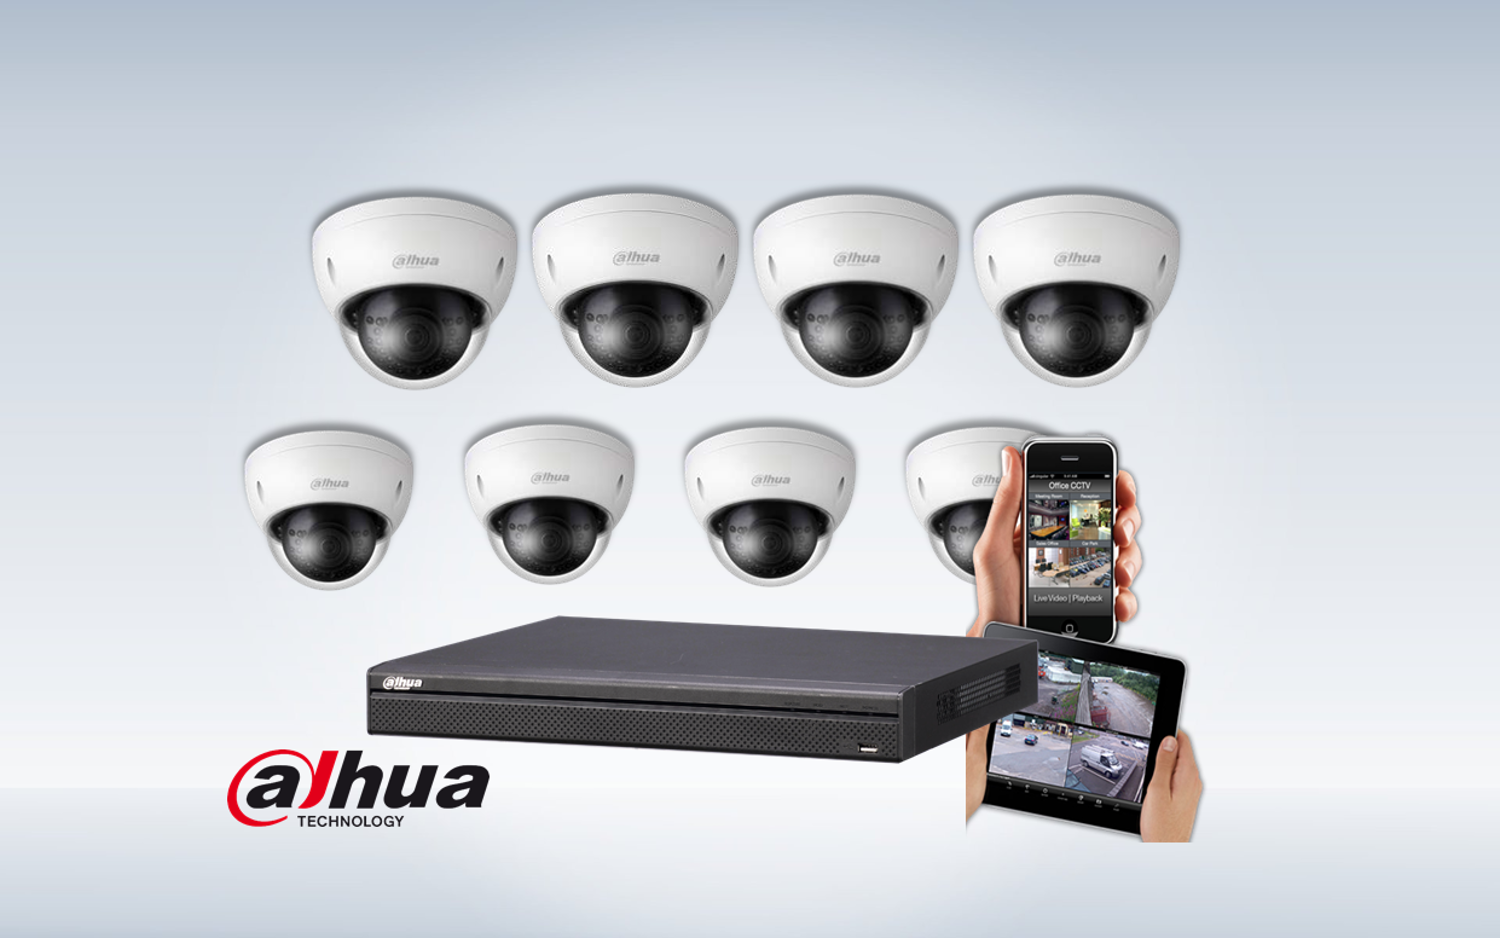 Camerabeveiliging - camerabewaking - productbeveiliging - winkelbeveiliging - camera - veiligheid - security - cctv